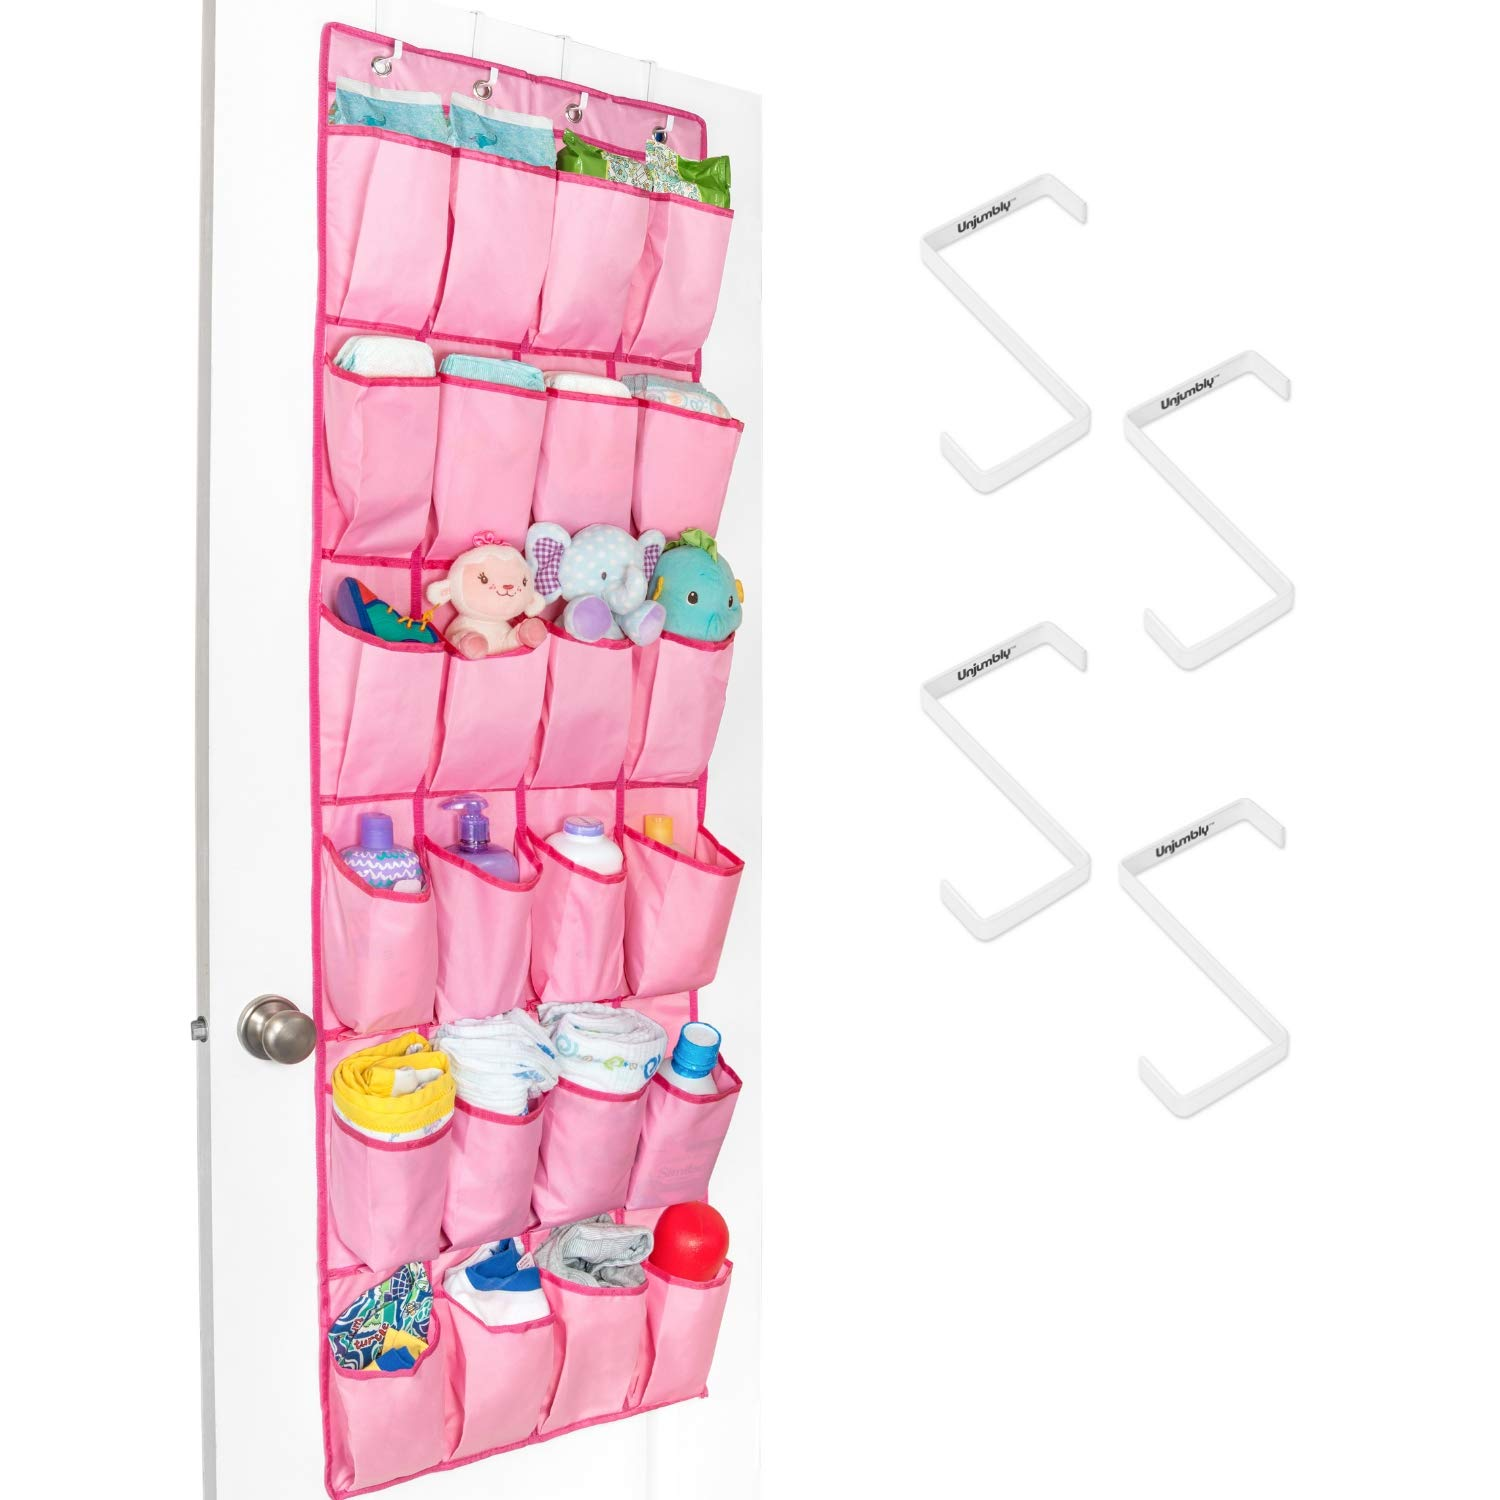 Unjumbly Shoe Storage for Women, Men, and Children, Ideal Baby Room Organizer